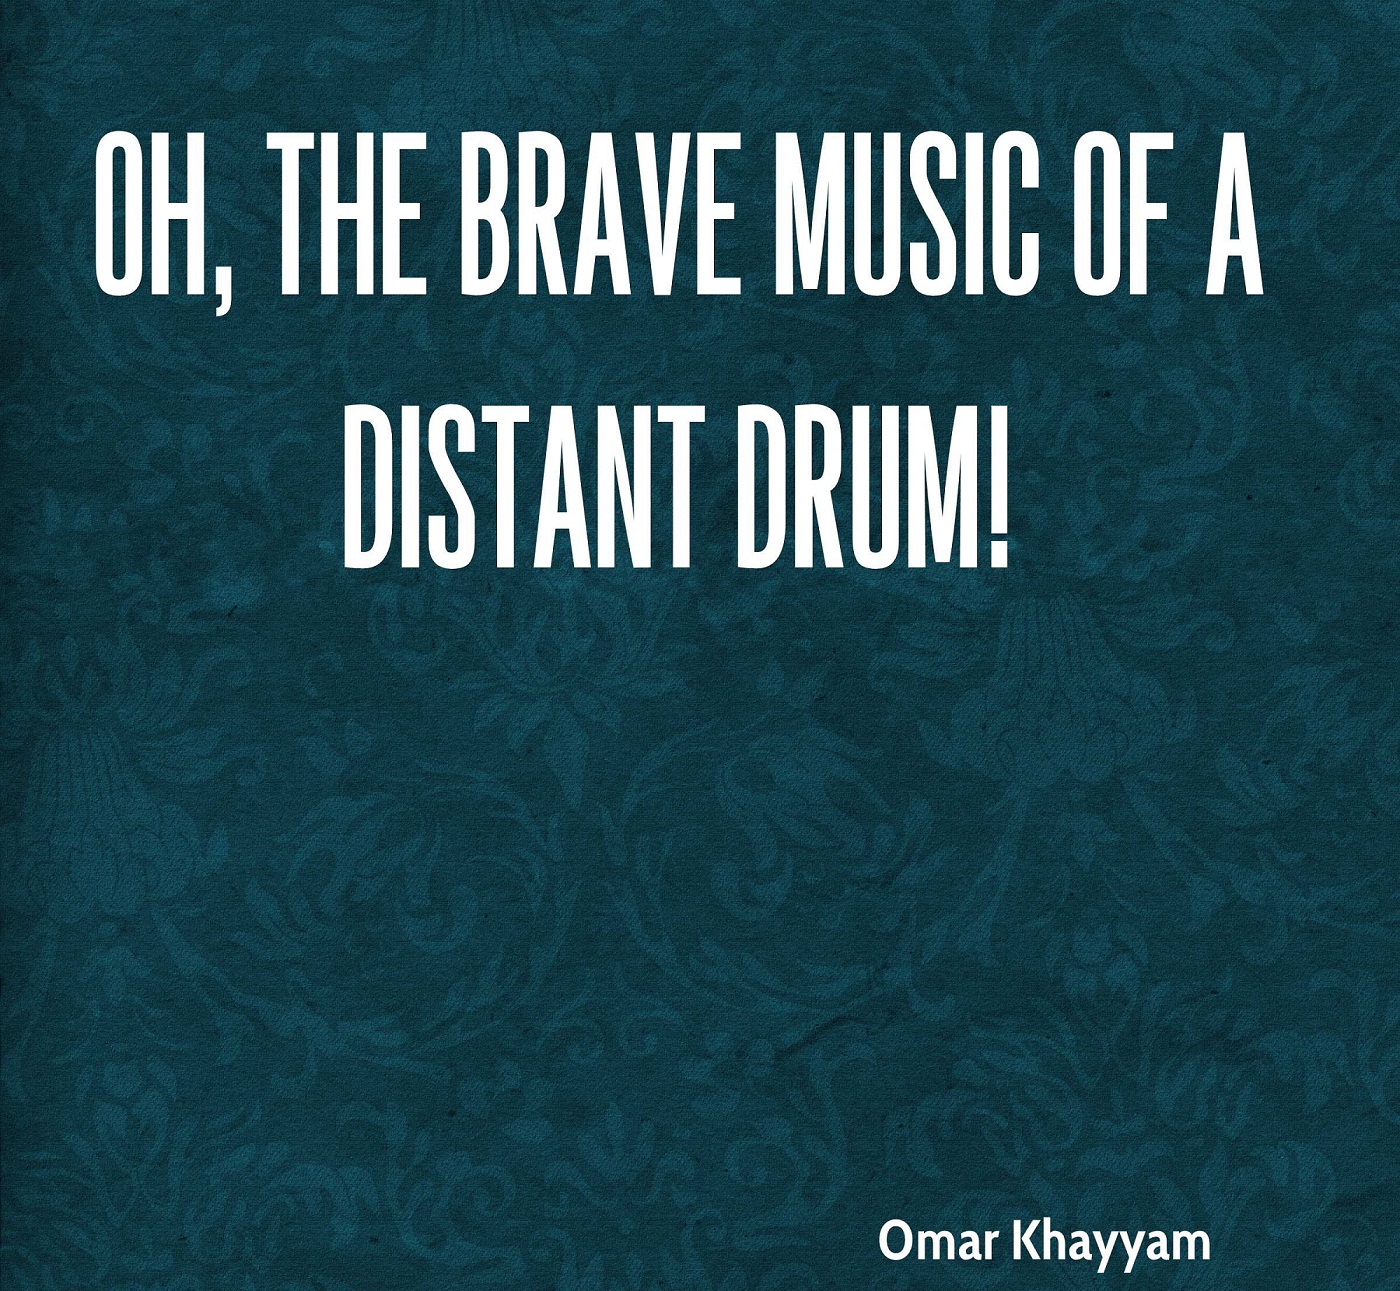 Oh The Brave Music Of A Distant Drum By Omar Khayyam